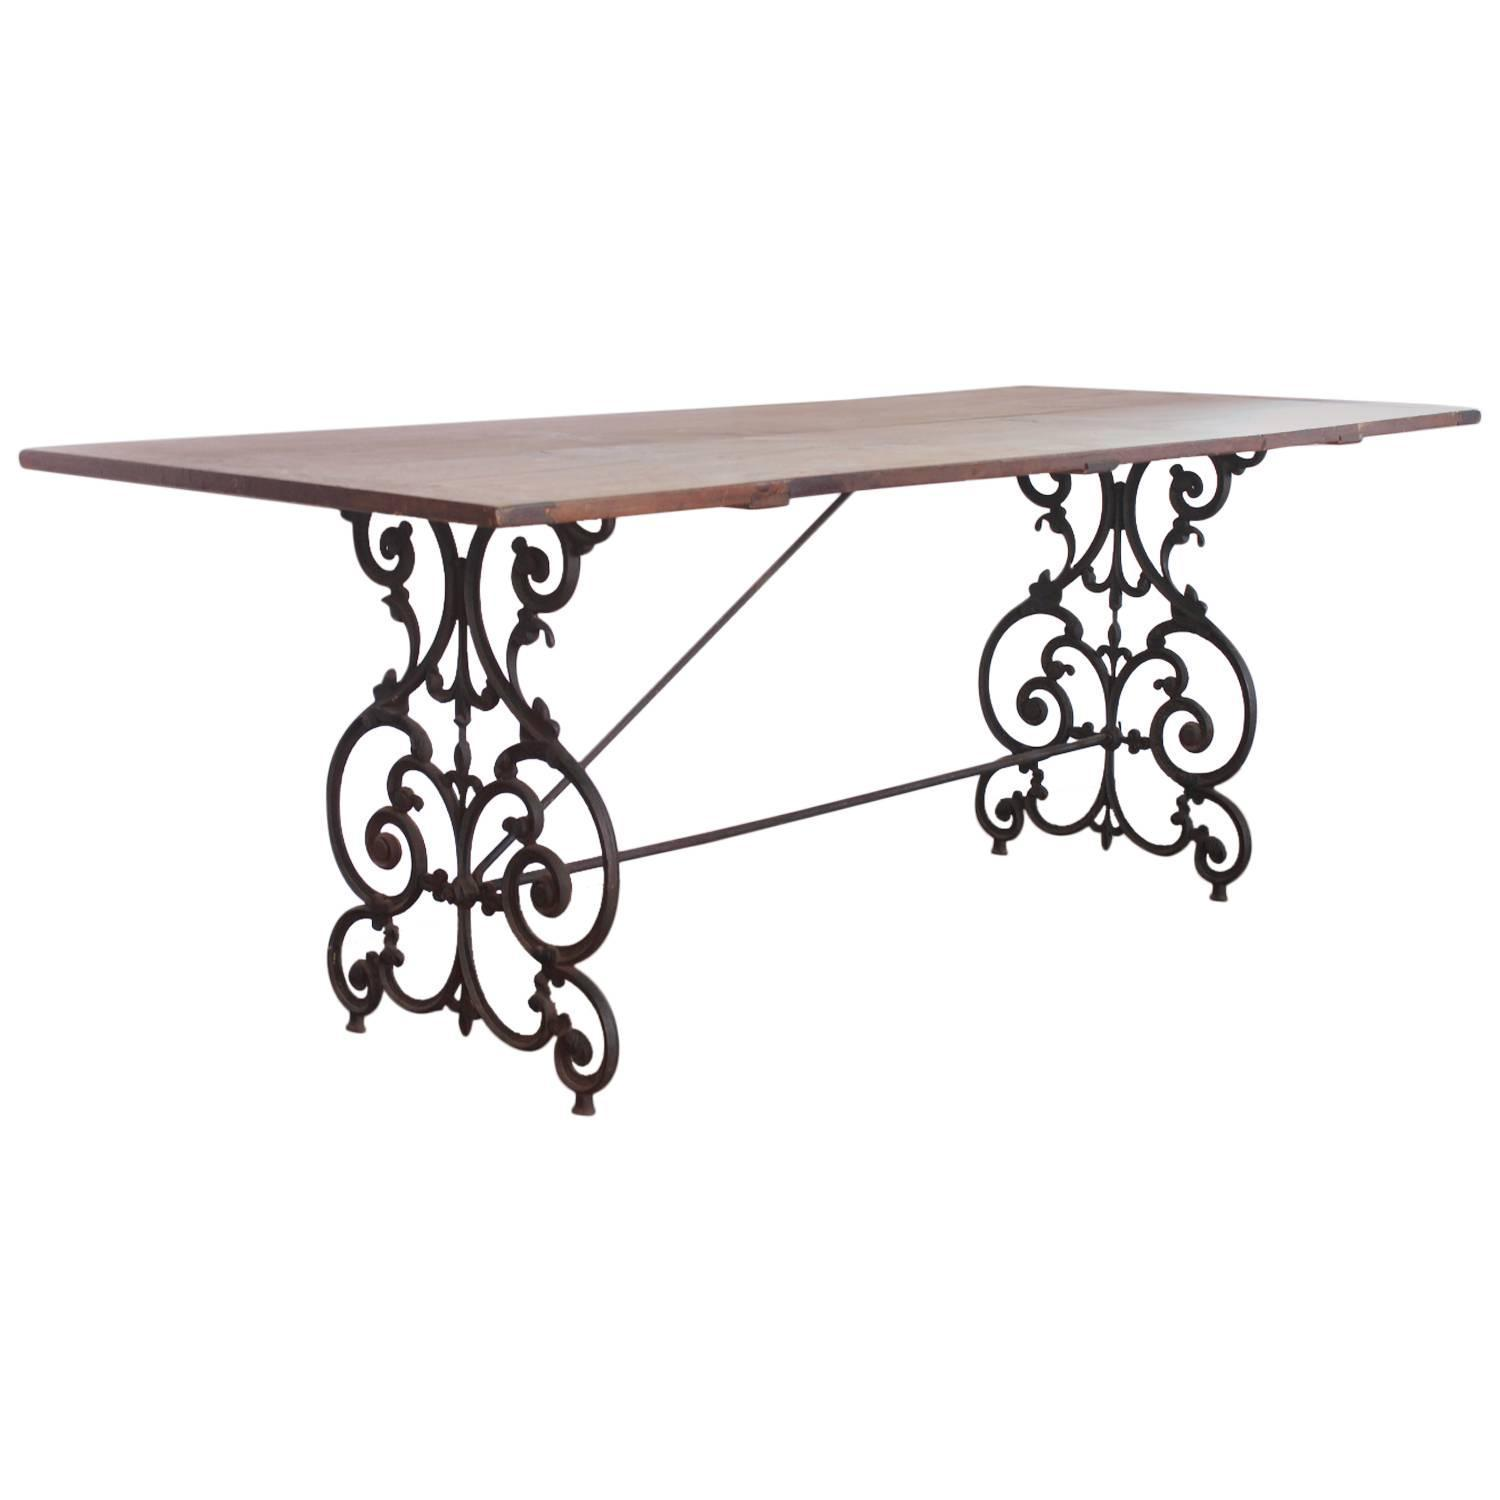 American Wrought Iron And Wood Base Dining Table Circa 1900s At 1stdibs